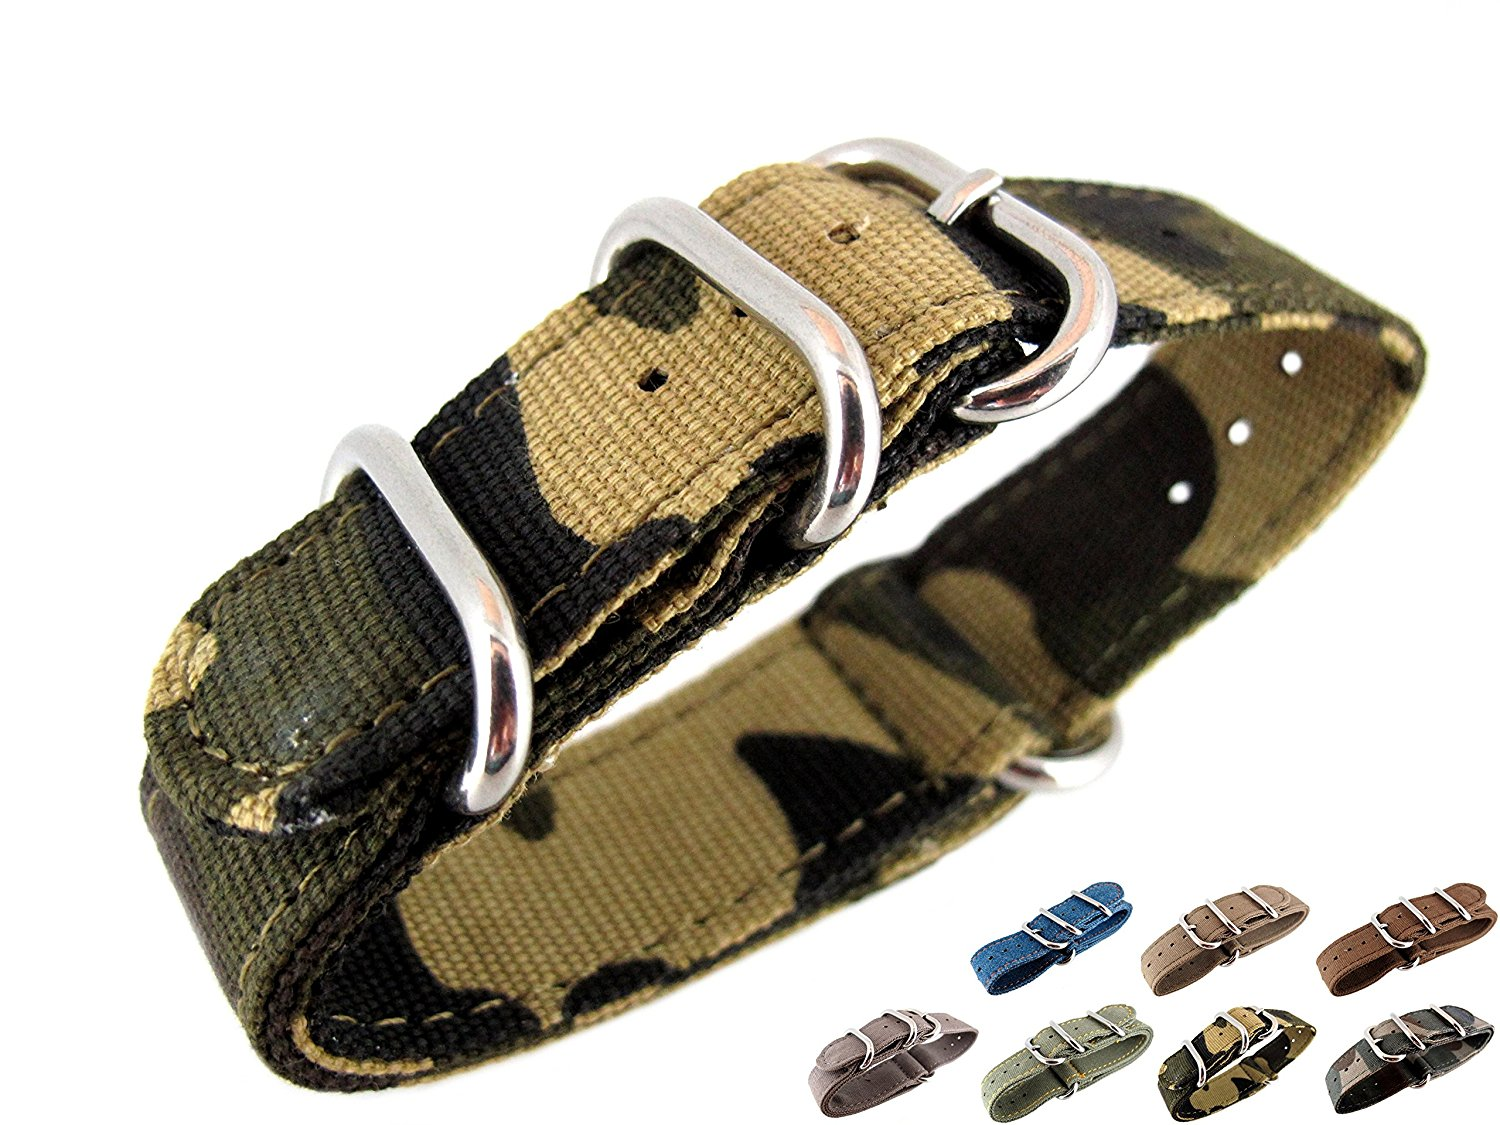 20mm Watch Strap Zulu Nato Band Watchband Premium Canvas Camouflage Sports Military Army 3 Solid Polishing Round Ring Buckle Wrist Length 150 To 220mm 1.8mm Thickness Fashion Trend NYS108 JRRS7777